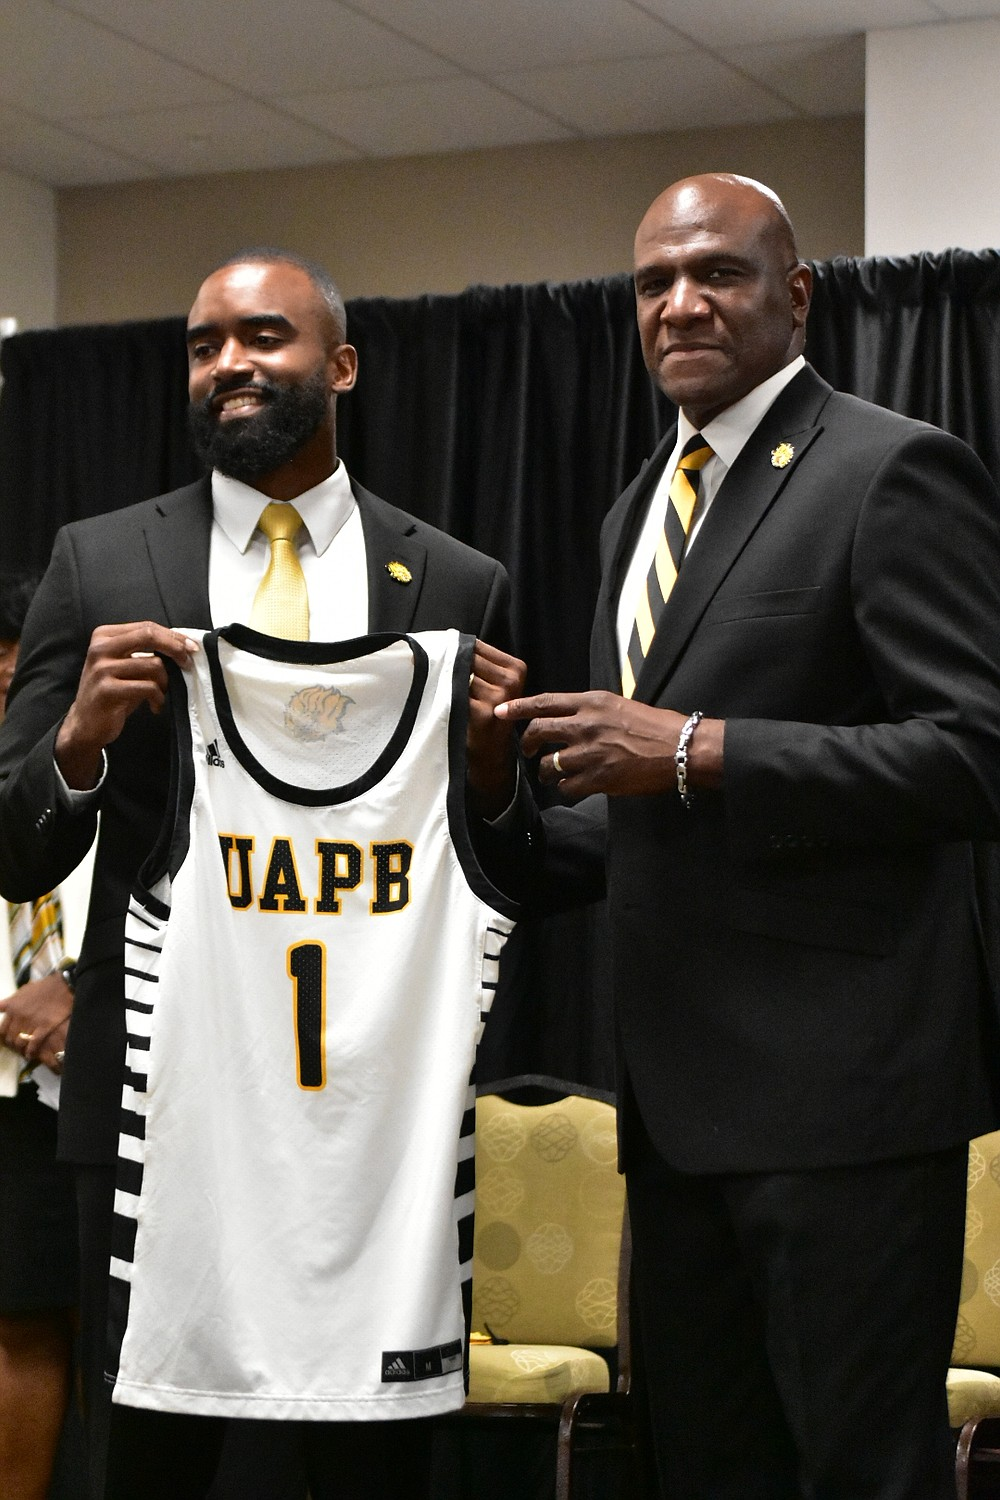 New UAPB men's basketball Coach Solomon Bozeman, left, receives a jersey from recently promoted Athletic Director Chris Robinson at the start of Bozeman's introductory news conference Tuesday. (Pine Bluff Commercial/I.C. Murrell)